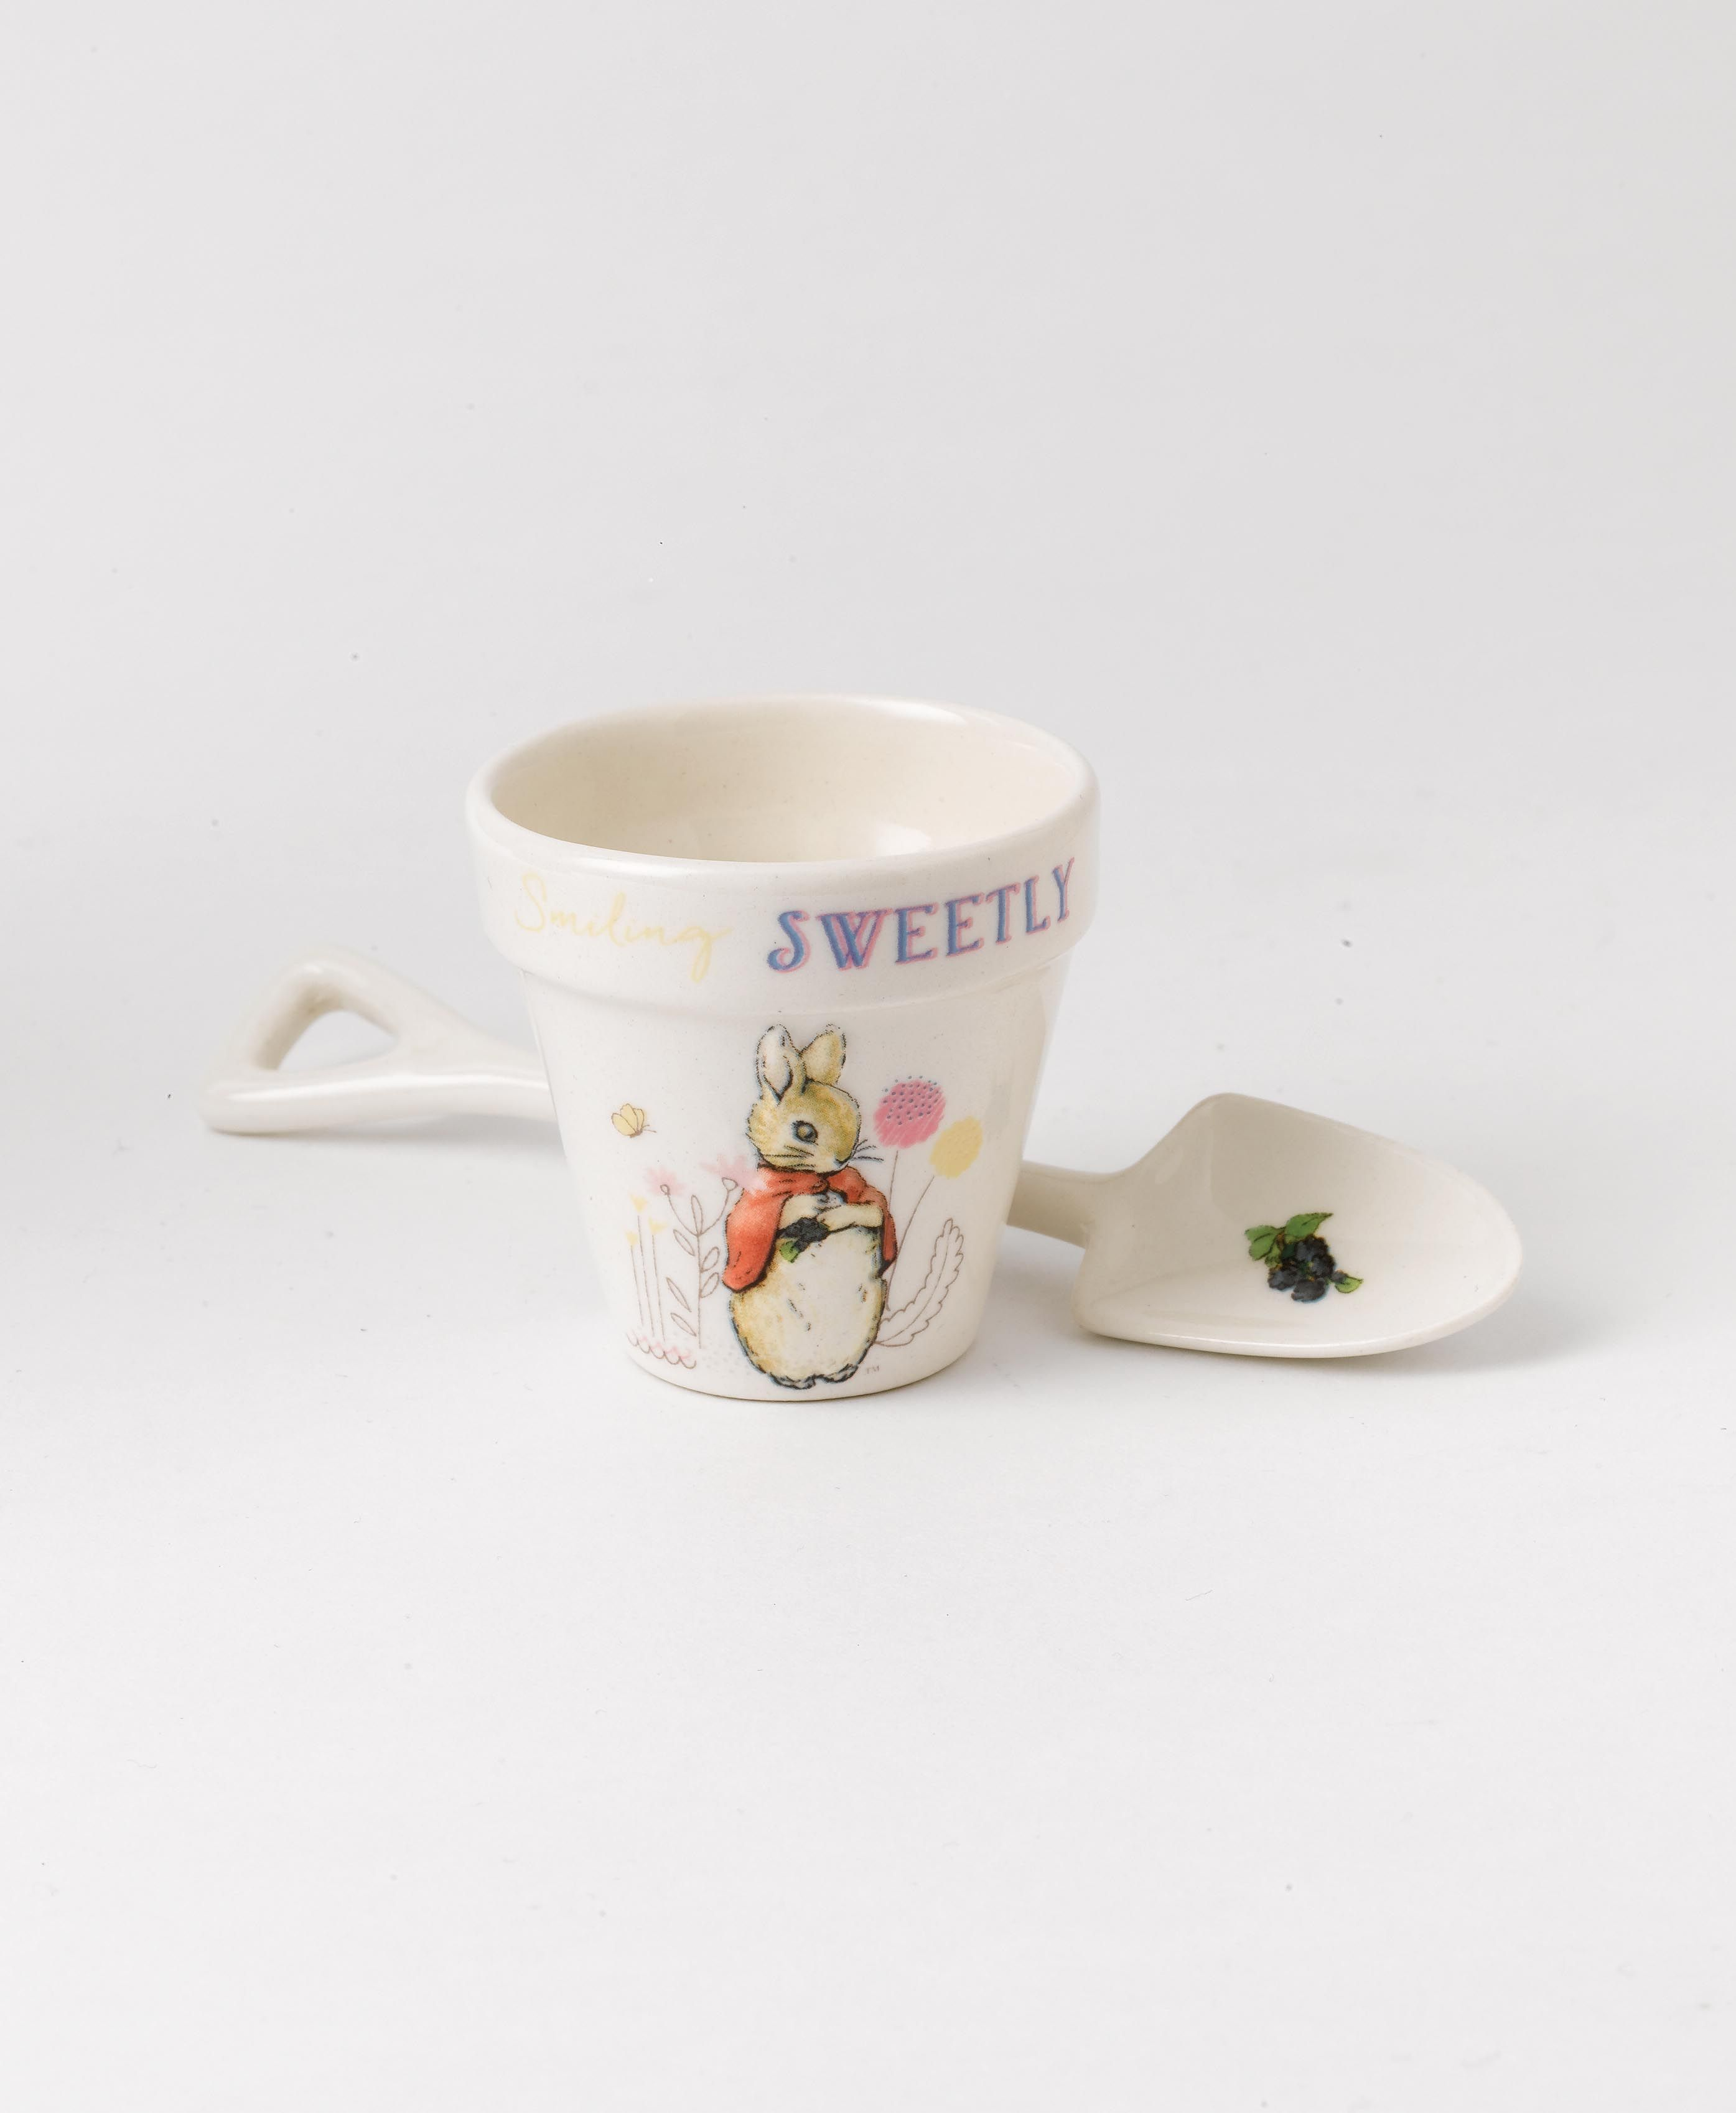 Flopsy Egg Cup & Spoon Set, Perfect for dippy eggs! #BeatrixPotter #DippyEggs #Flopsy